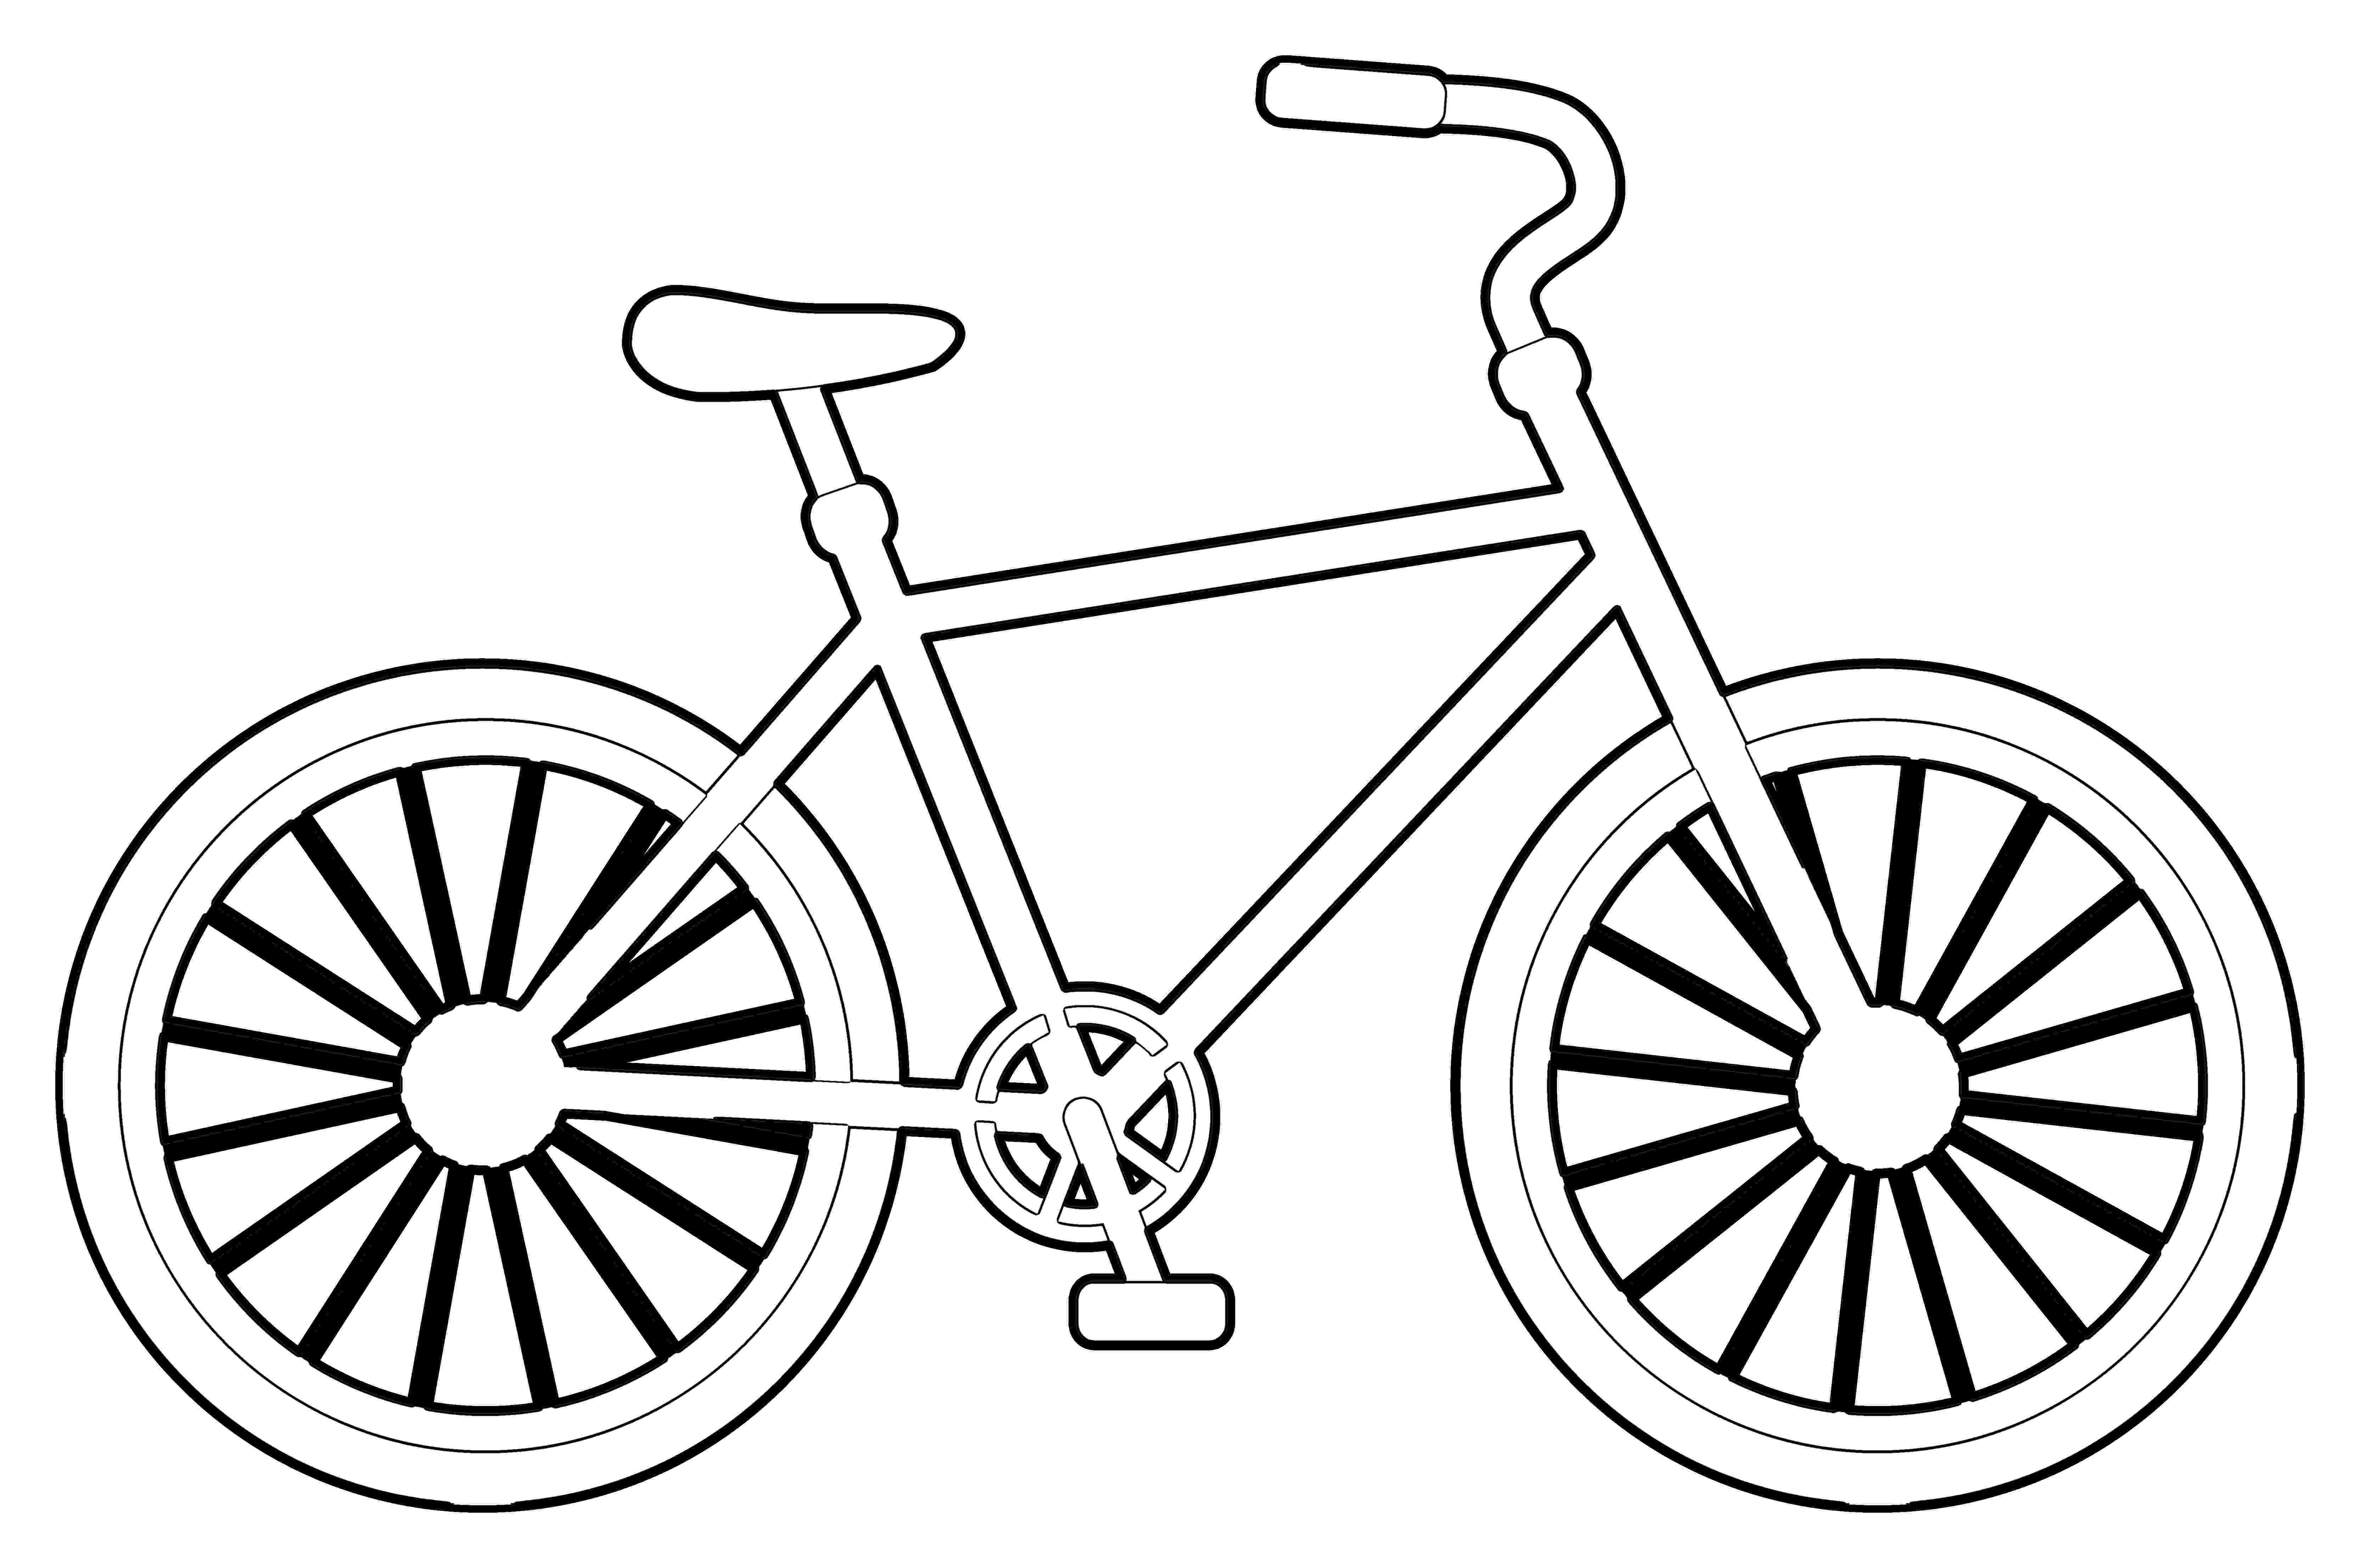 bike coloring pages riding girl on bicycle coloring page wecoloringpagecom bike pages coloring